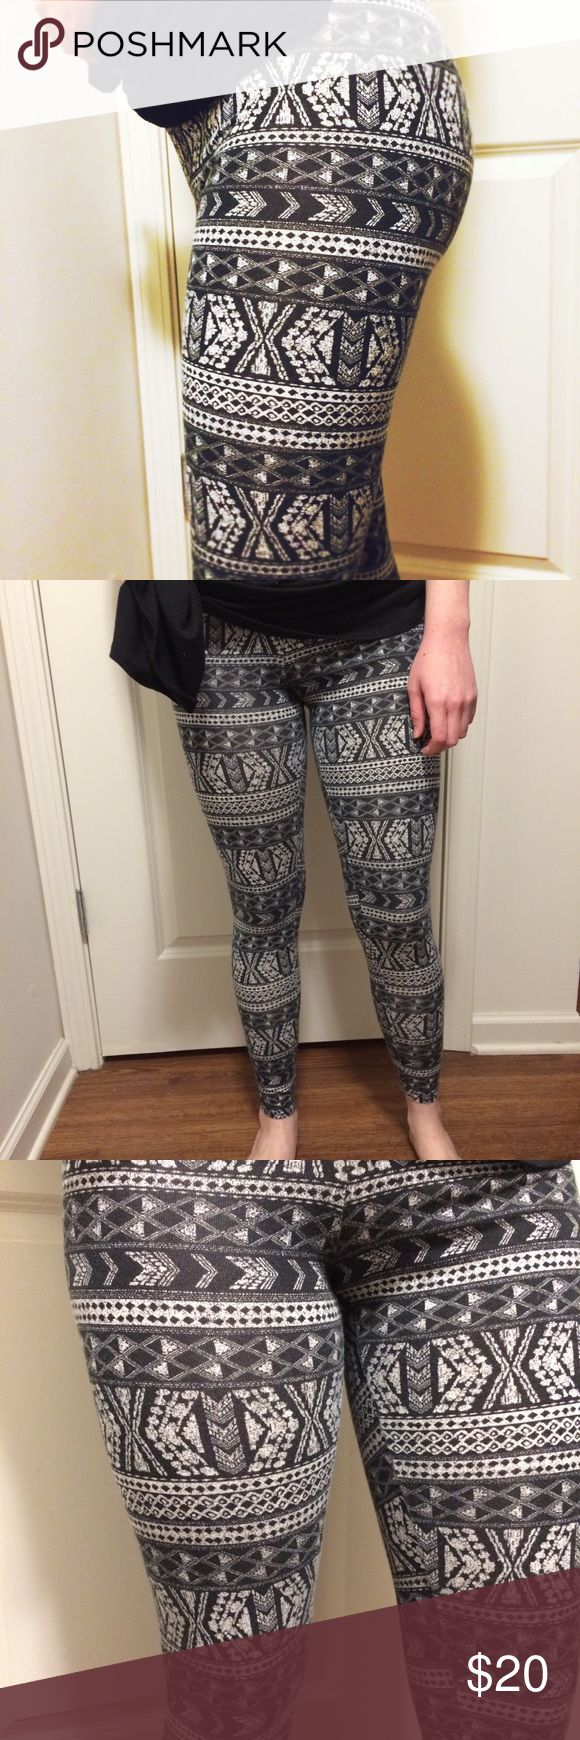 AE Aztec Leggings Perfect condition. Like new. Worn once. Not sheer! Elastic band around the waist. Vibrant, cool Aztec print! Length: coming soon. Ask questions! MAKE AN OFFER OR BUNDLE FOR A PRIVATE DISCOUNT. American Eagle Outfitters Pants Leggings